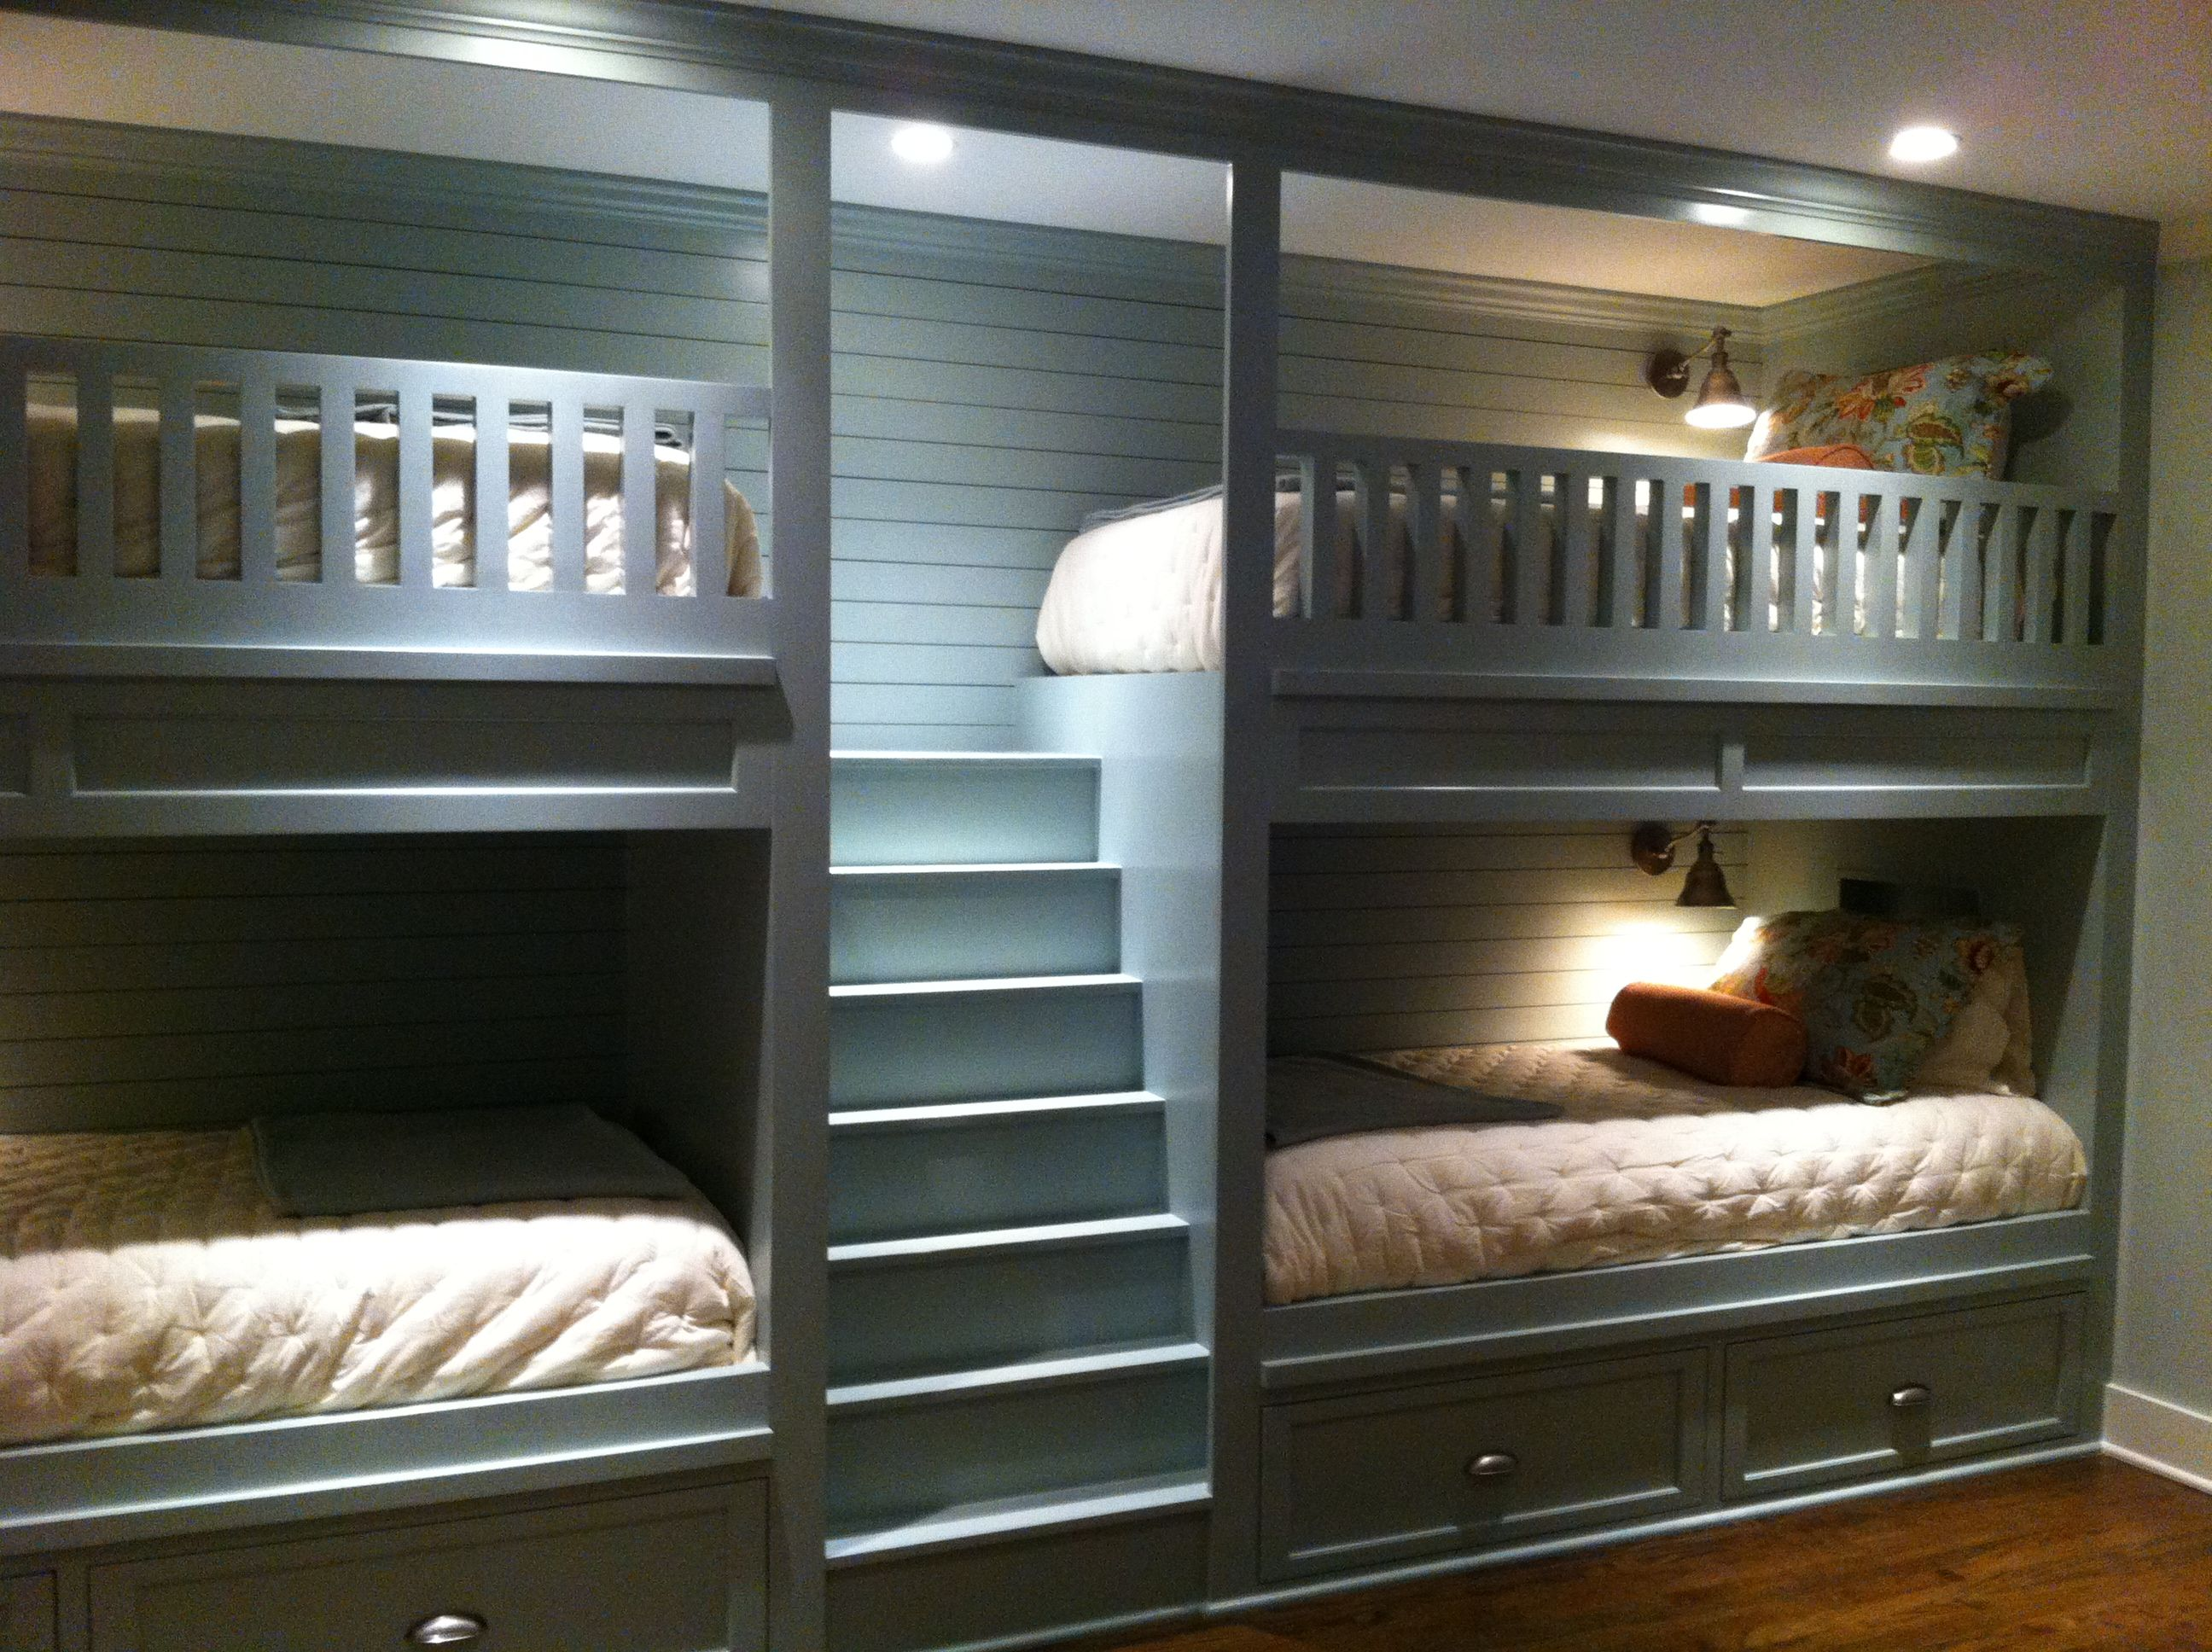 Double Loft Bed For Kids Double Bunk Beds In Our New Basement Bunk Room Fun For